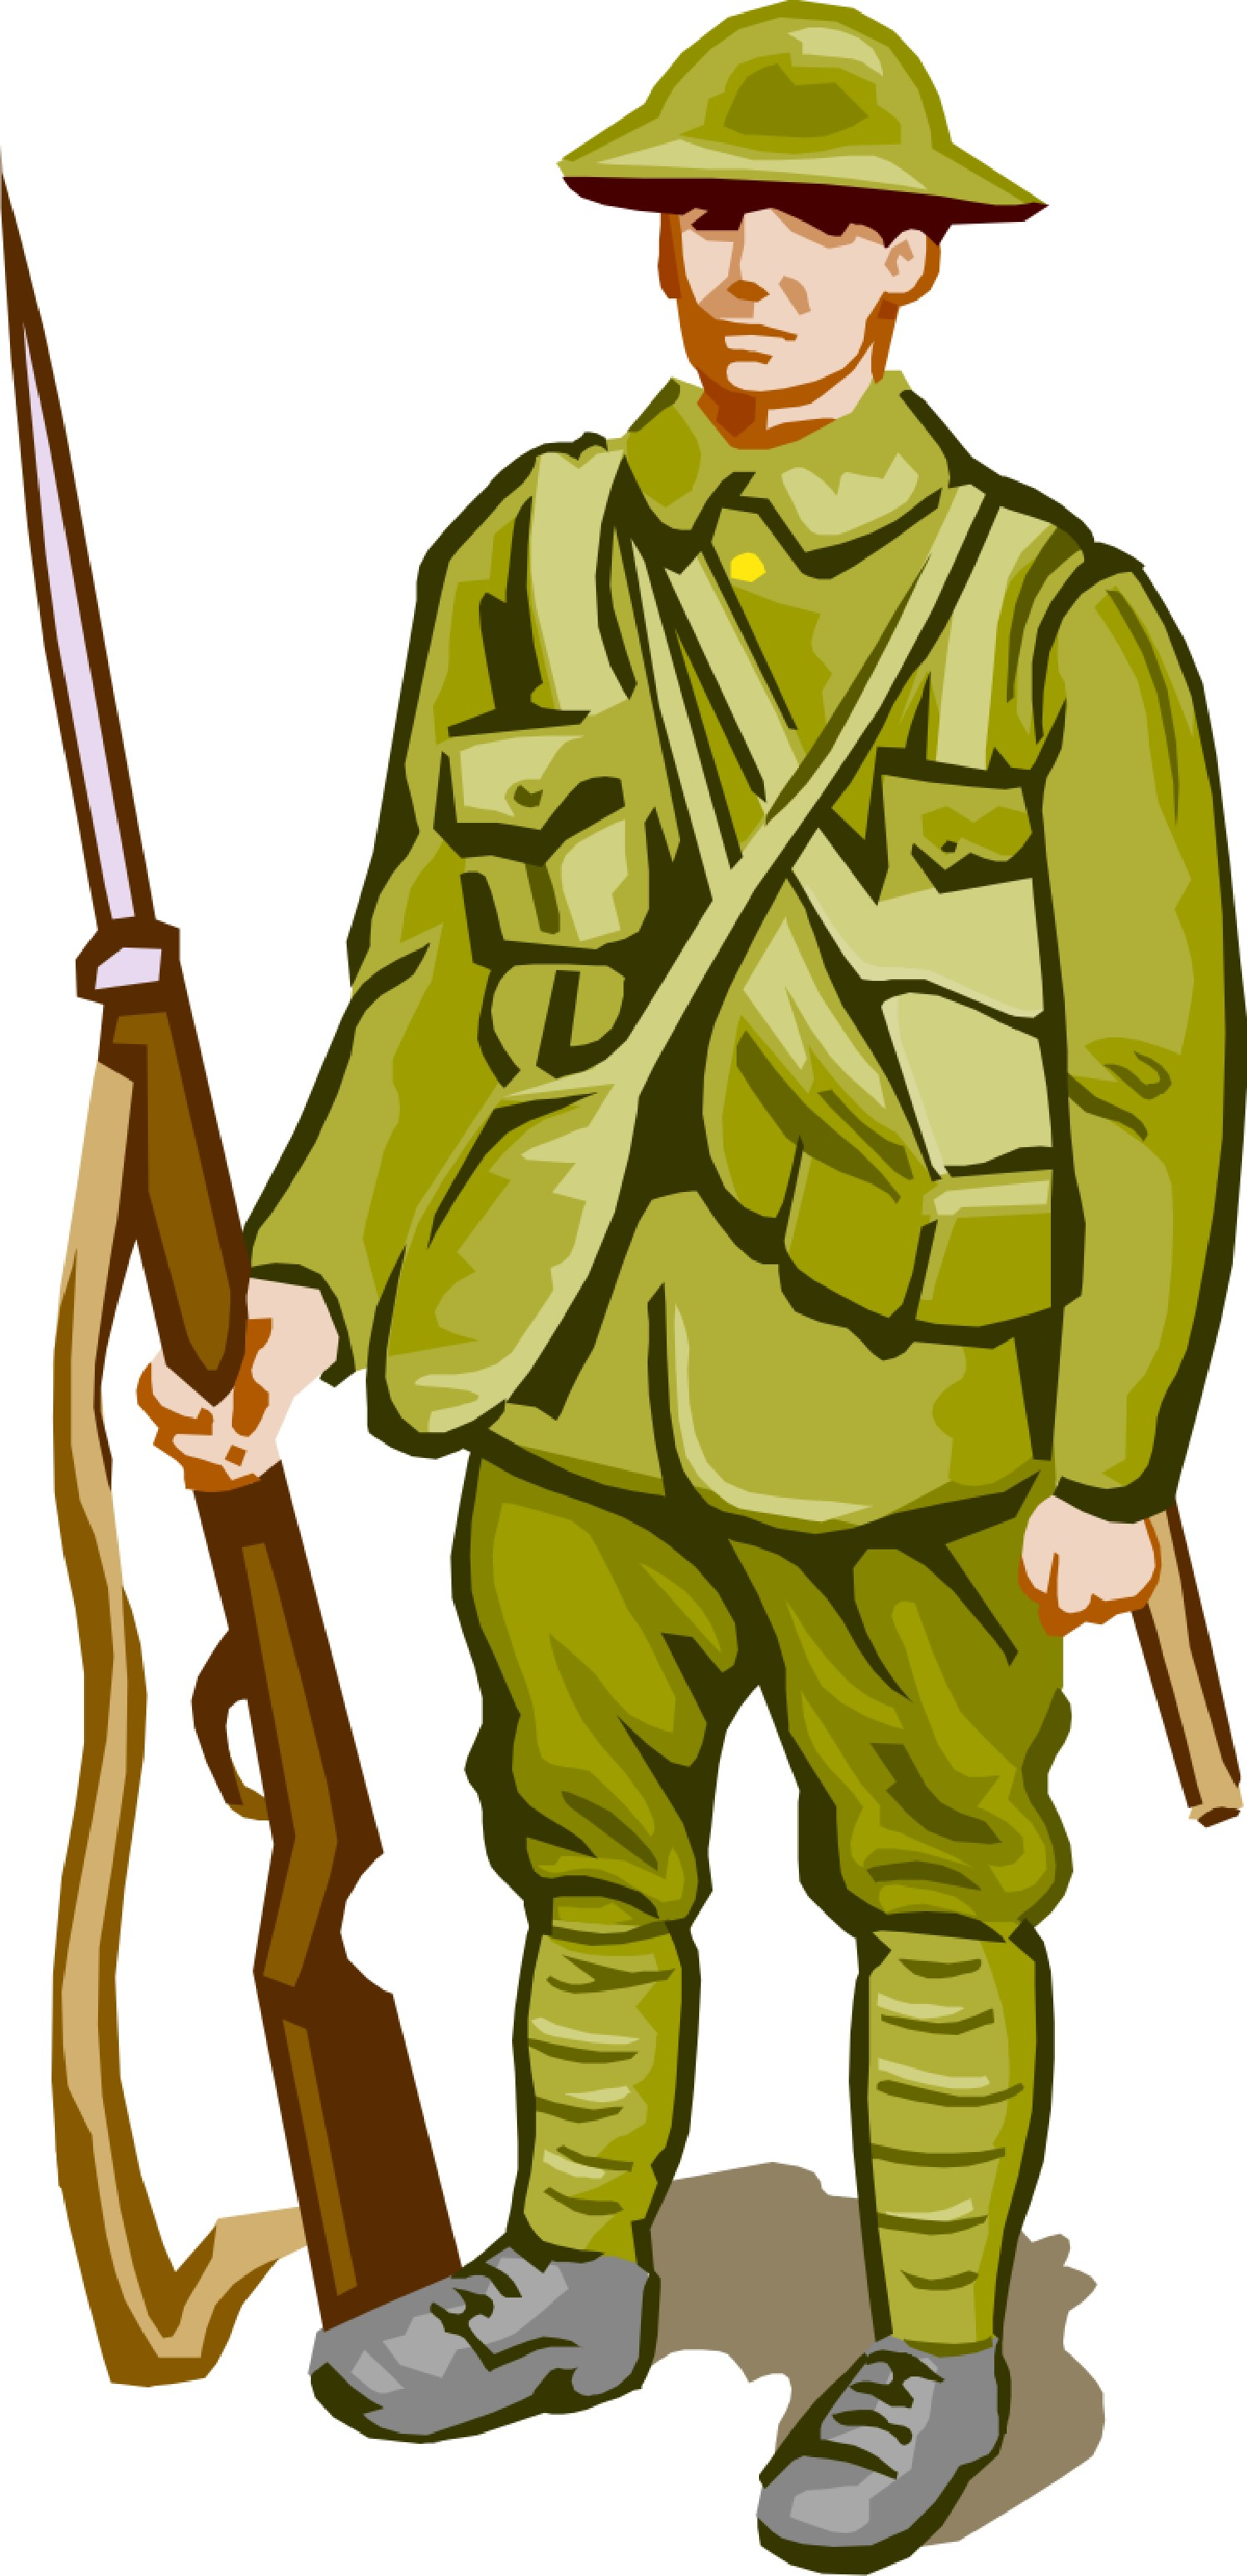 Ww2 images clipart banner library stock Wwii Cliparts | Free download best Wwii Cliparts on ... banner library stock